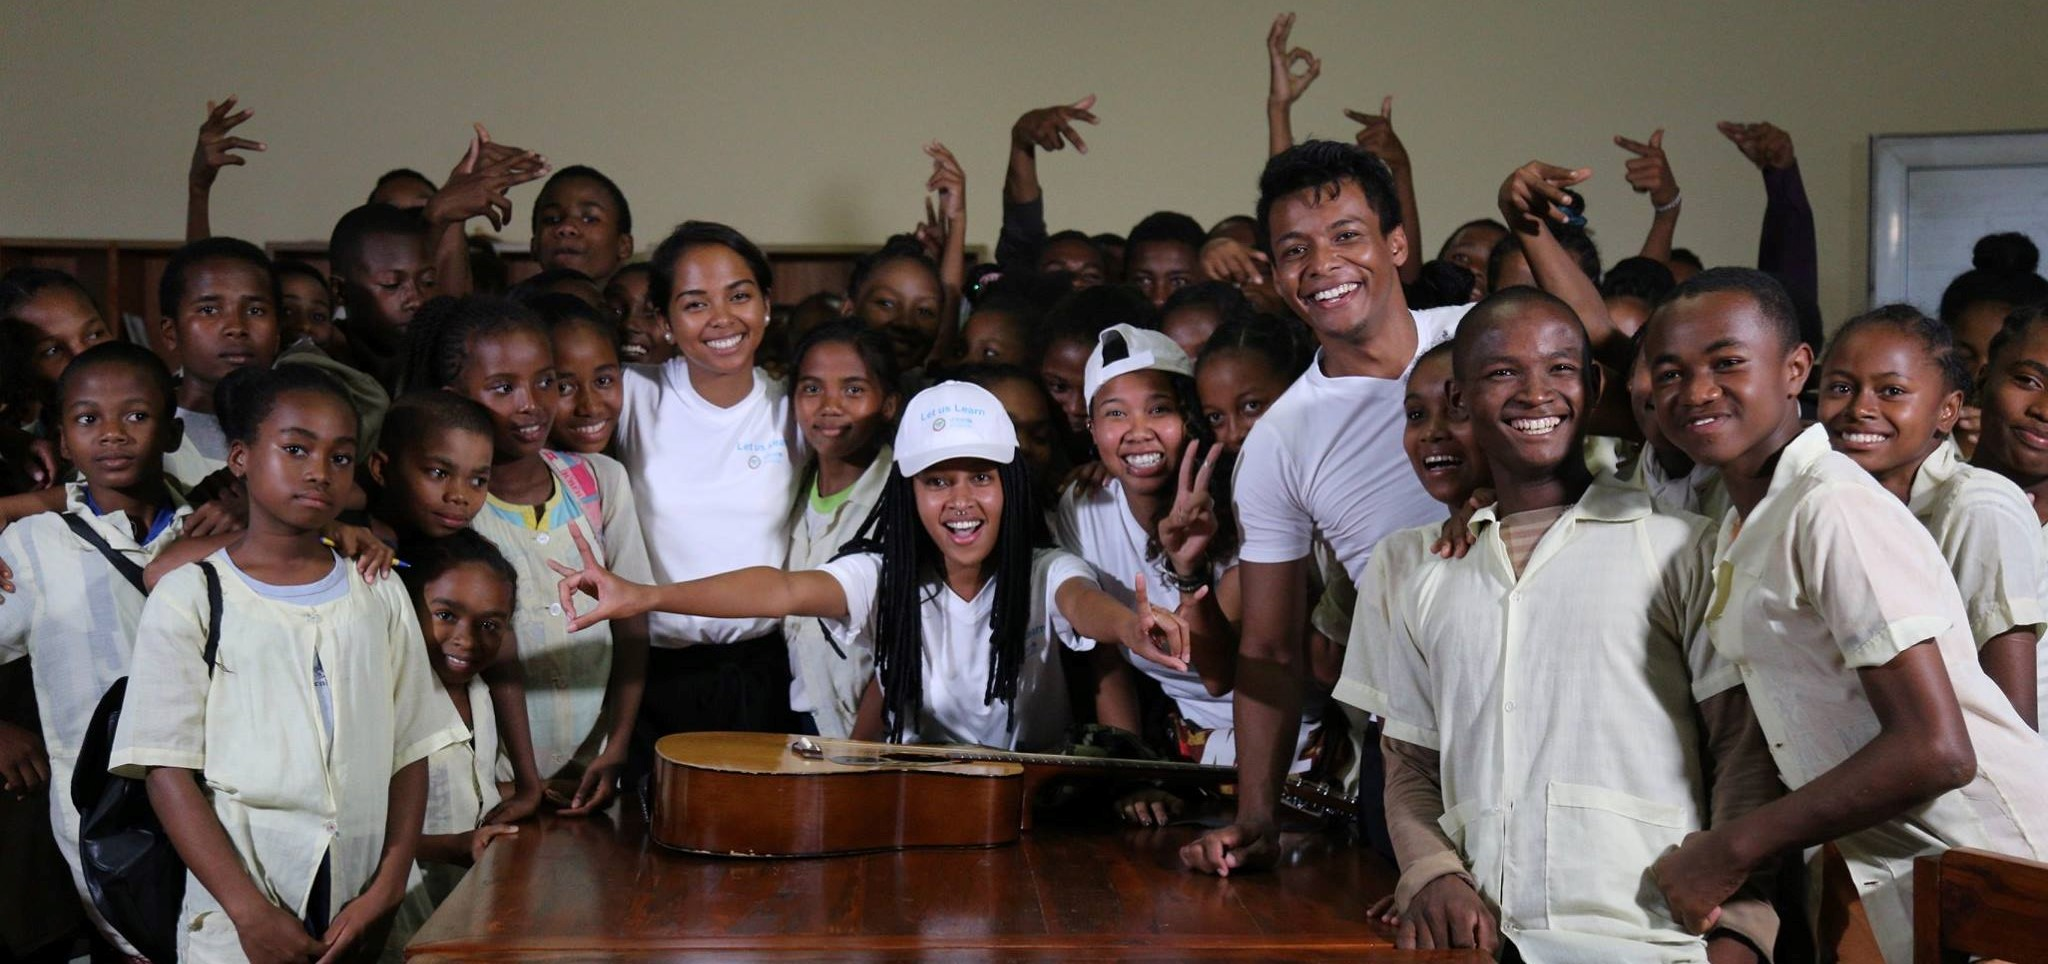 A group of school children cheering standing around a table with a guitar on it.